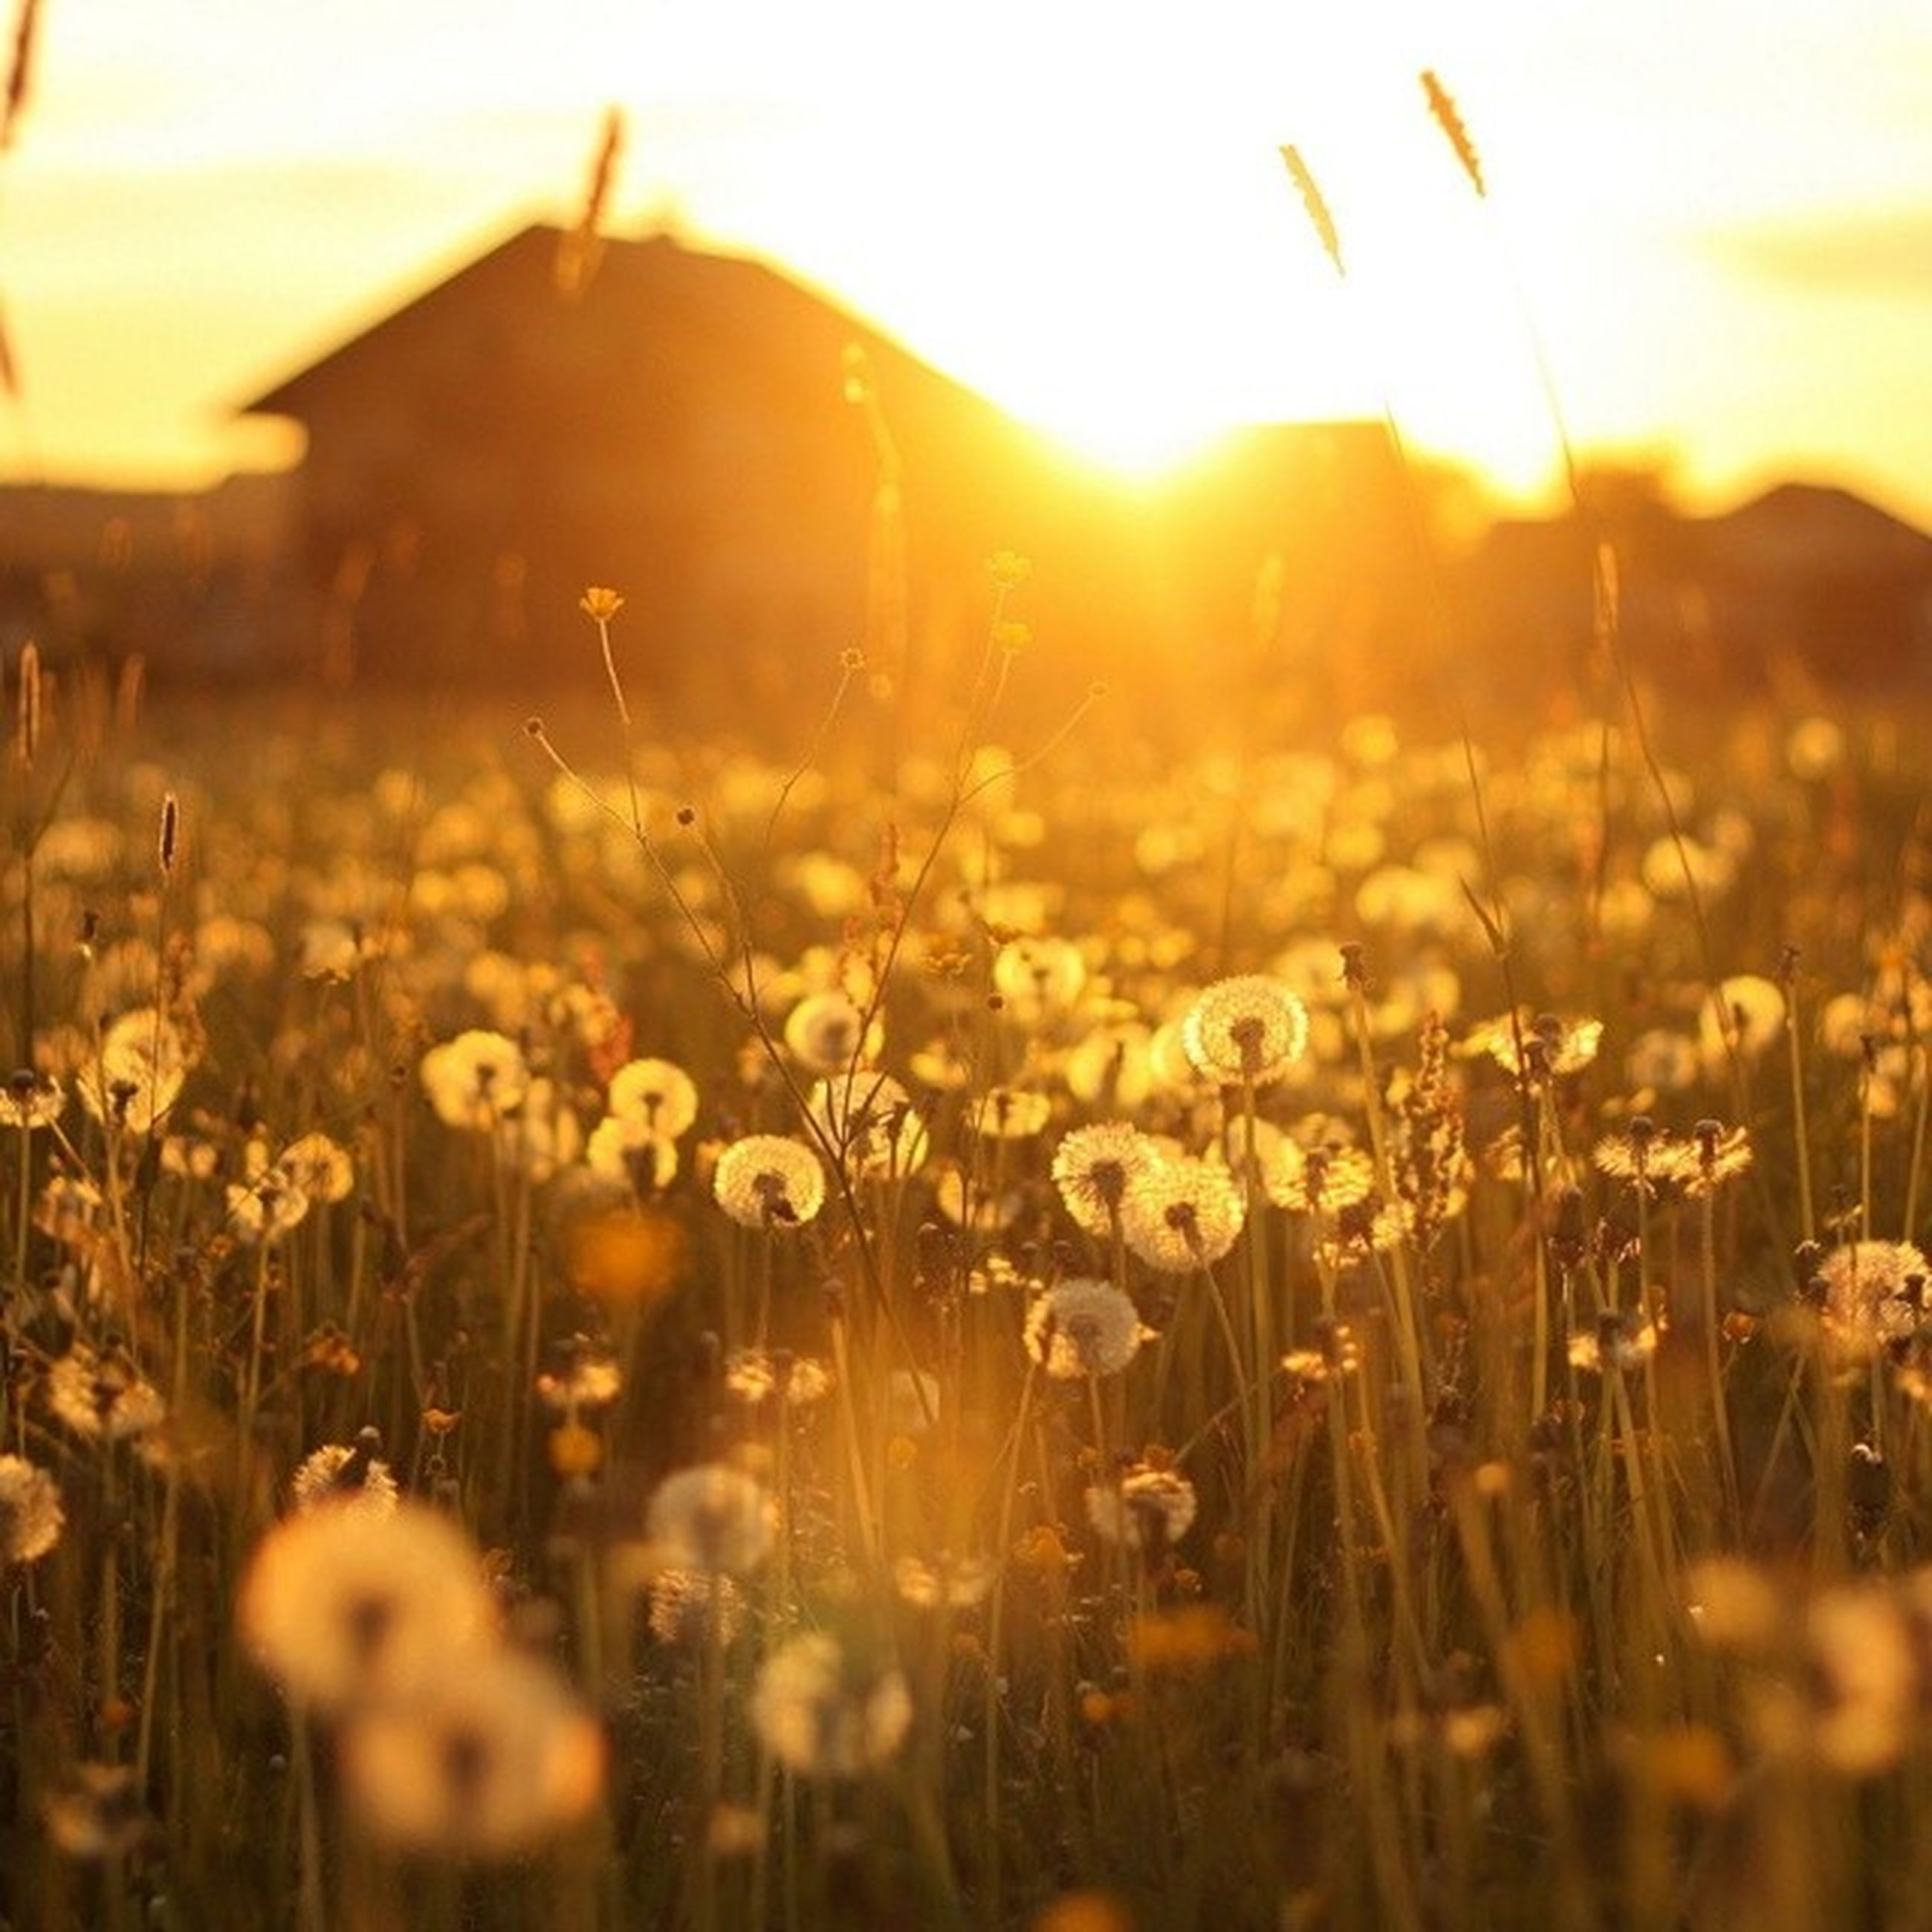 flower, sunset, growth, field, beauty in nature, focus on foreground, sun, plant, nature, freshness, sunlight, fragility, sunbeam, selective focus, yellow, lens flare, landscape, rural scene, close-up, sky